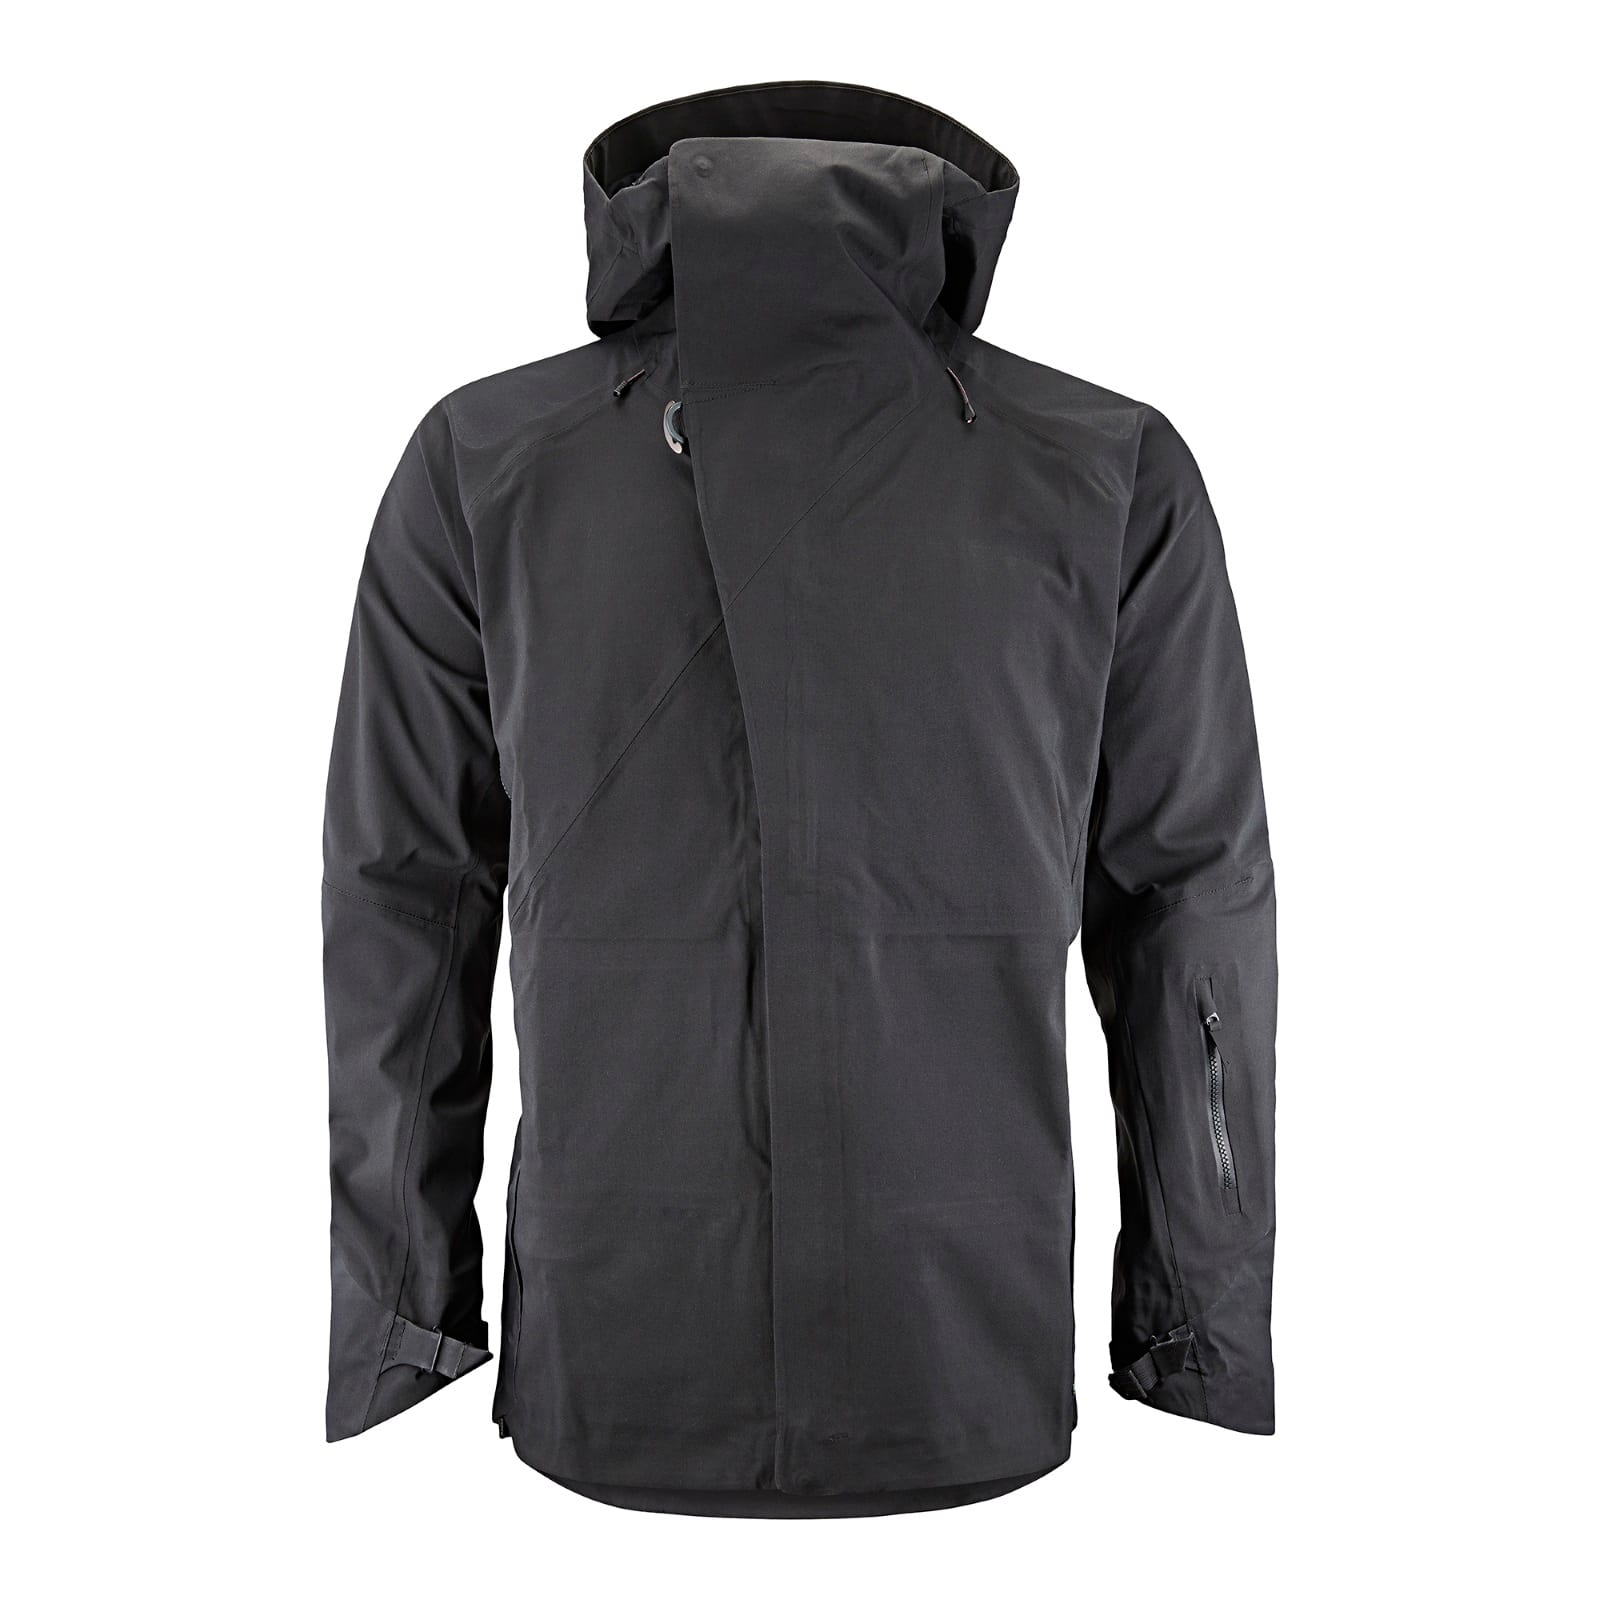 Men's Brage Jacket